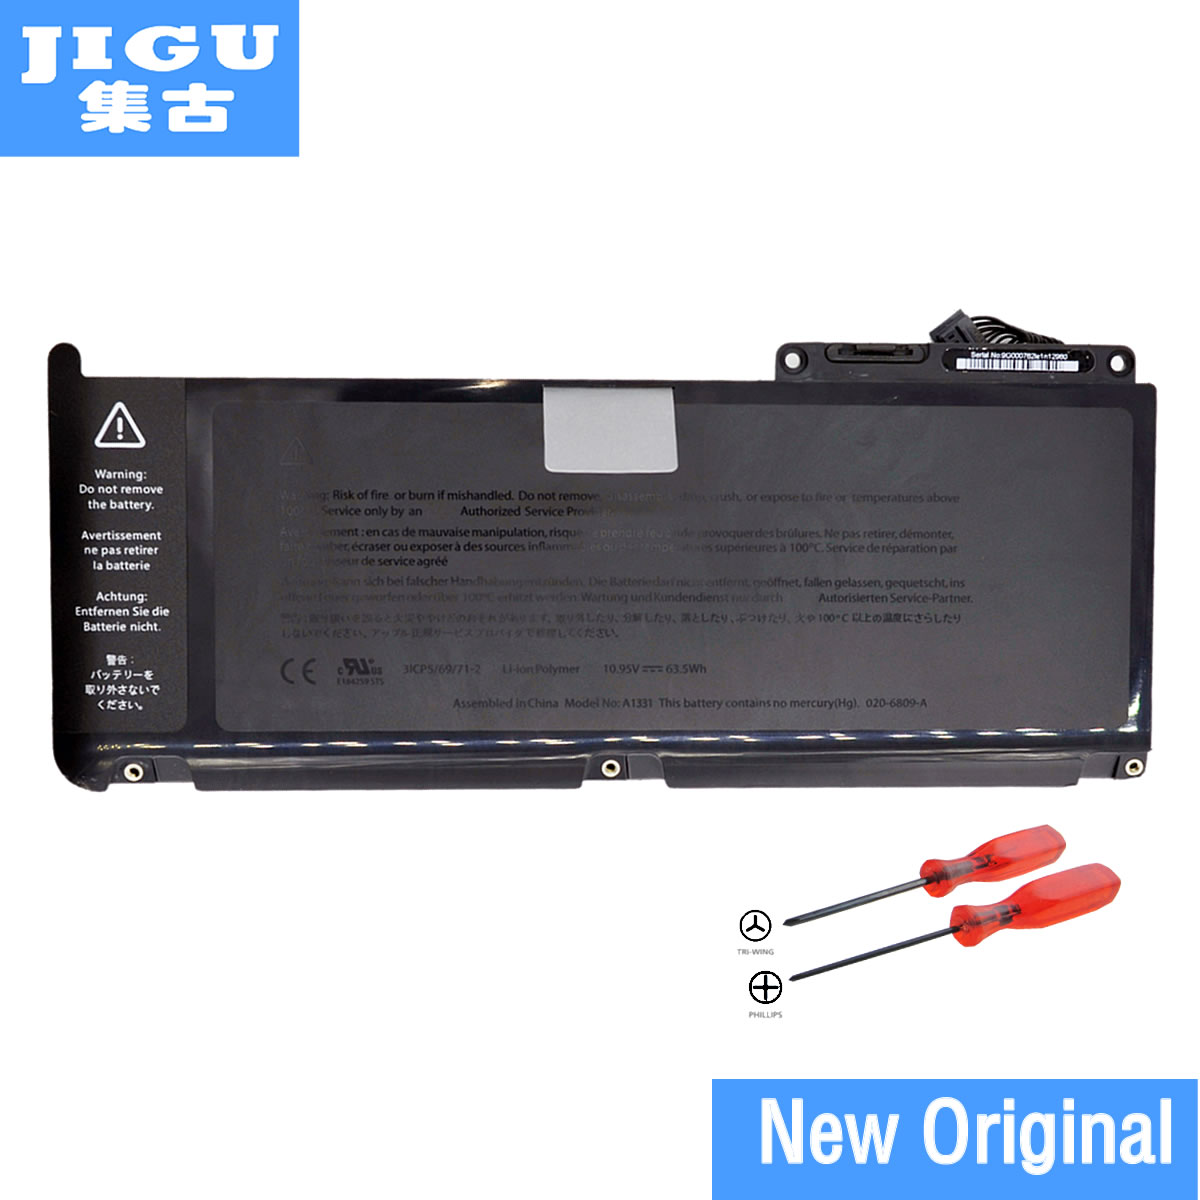 JIGU Free shipping A1331 Original Laptop Battery For Apple MacBook A1342 MC207 MC516 For MacBook 13 Pro 15 17 13.3 free shipping a1417 original laptop battery for apple retina a1398 mc975 mc976 me664 me665 10 95v 95wh